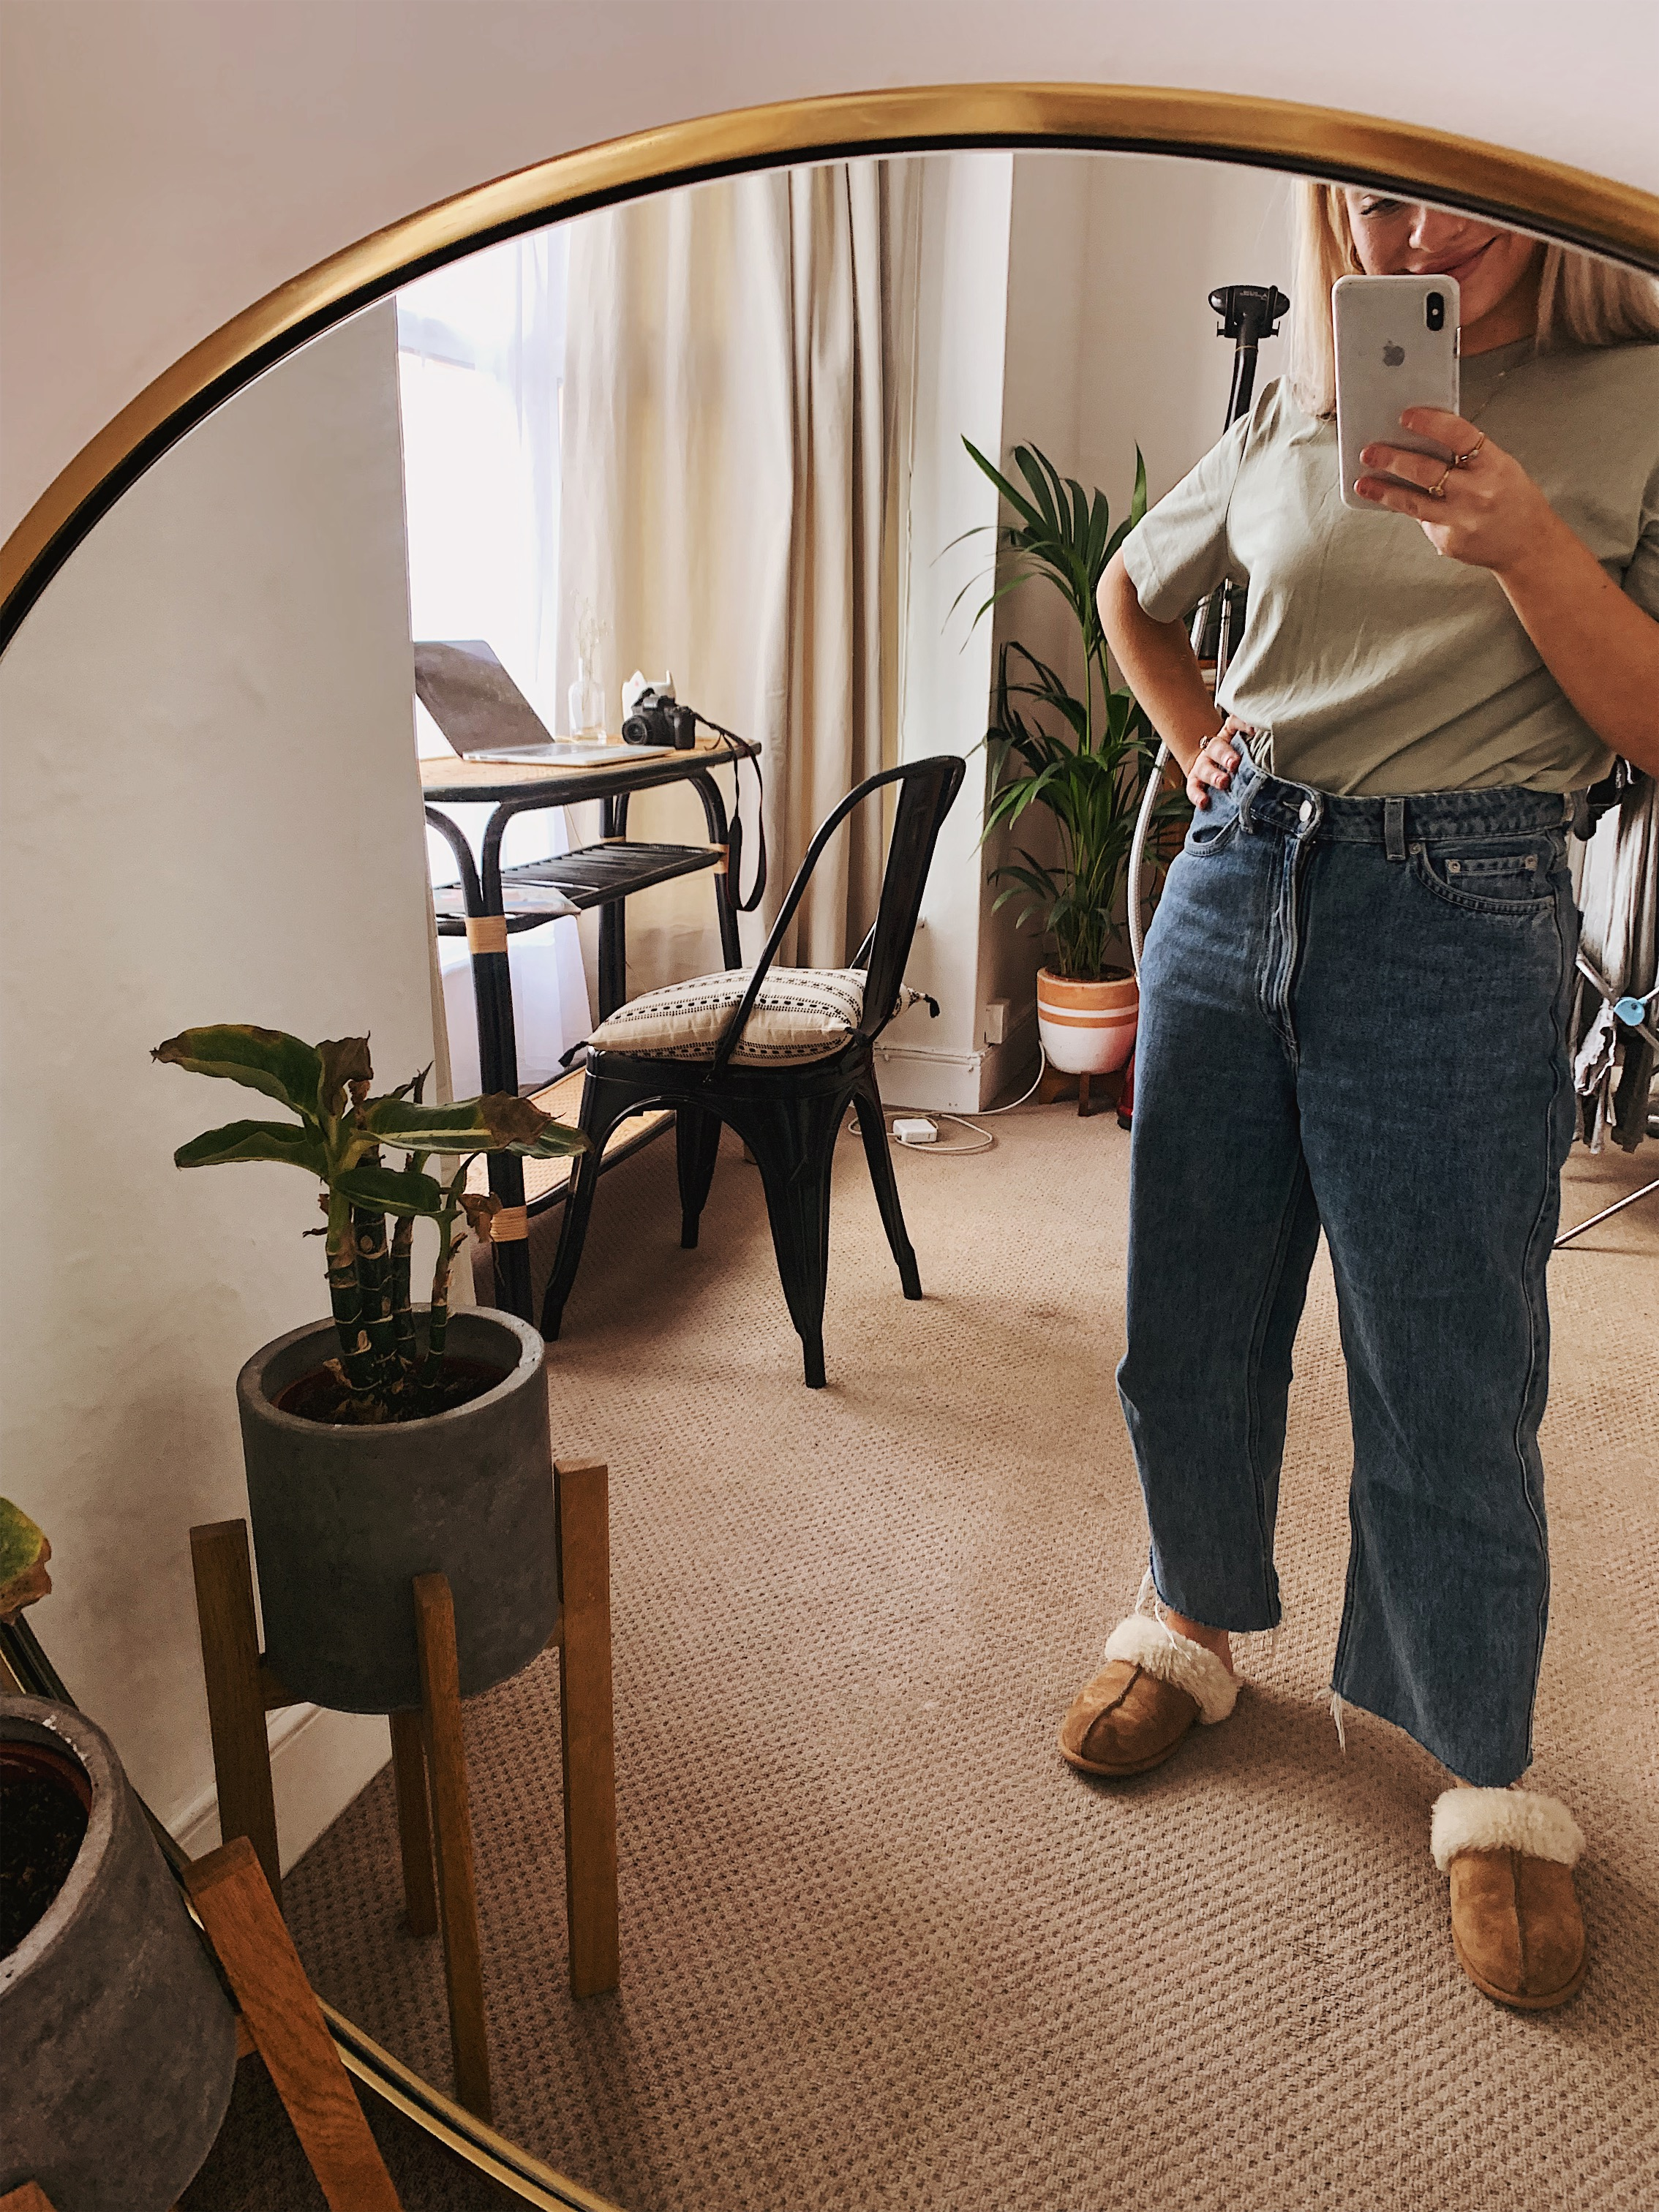 Mirror photo at home in jeans and slippers